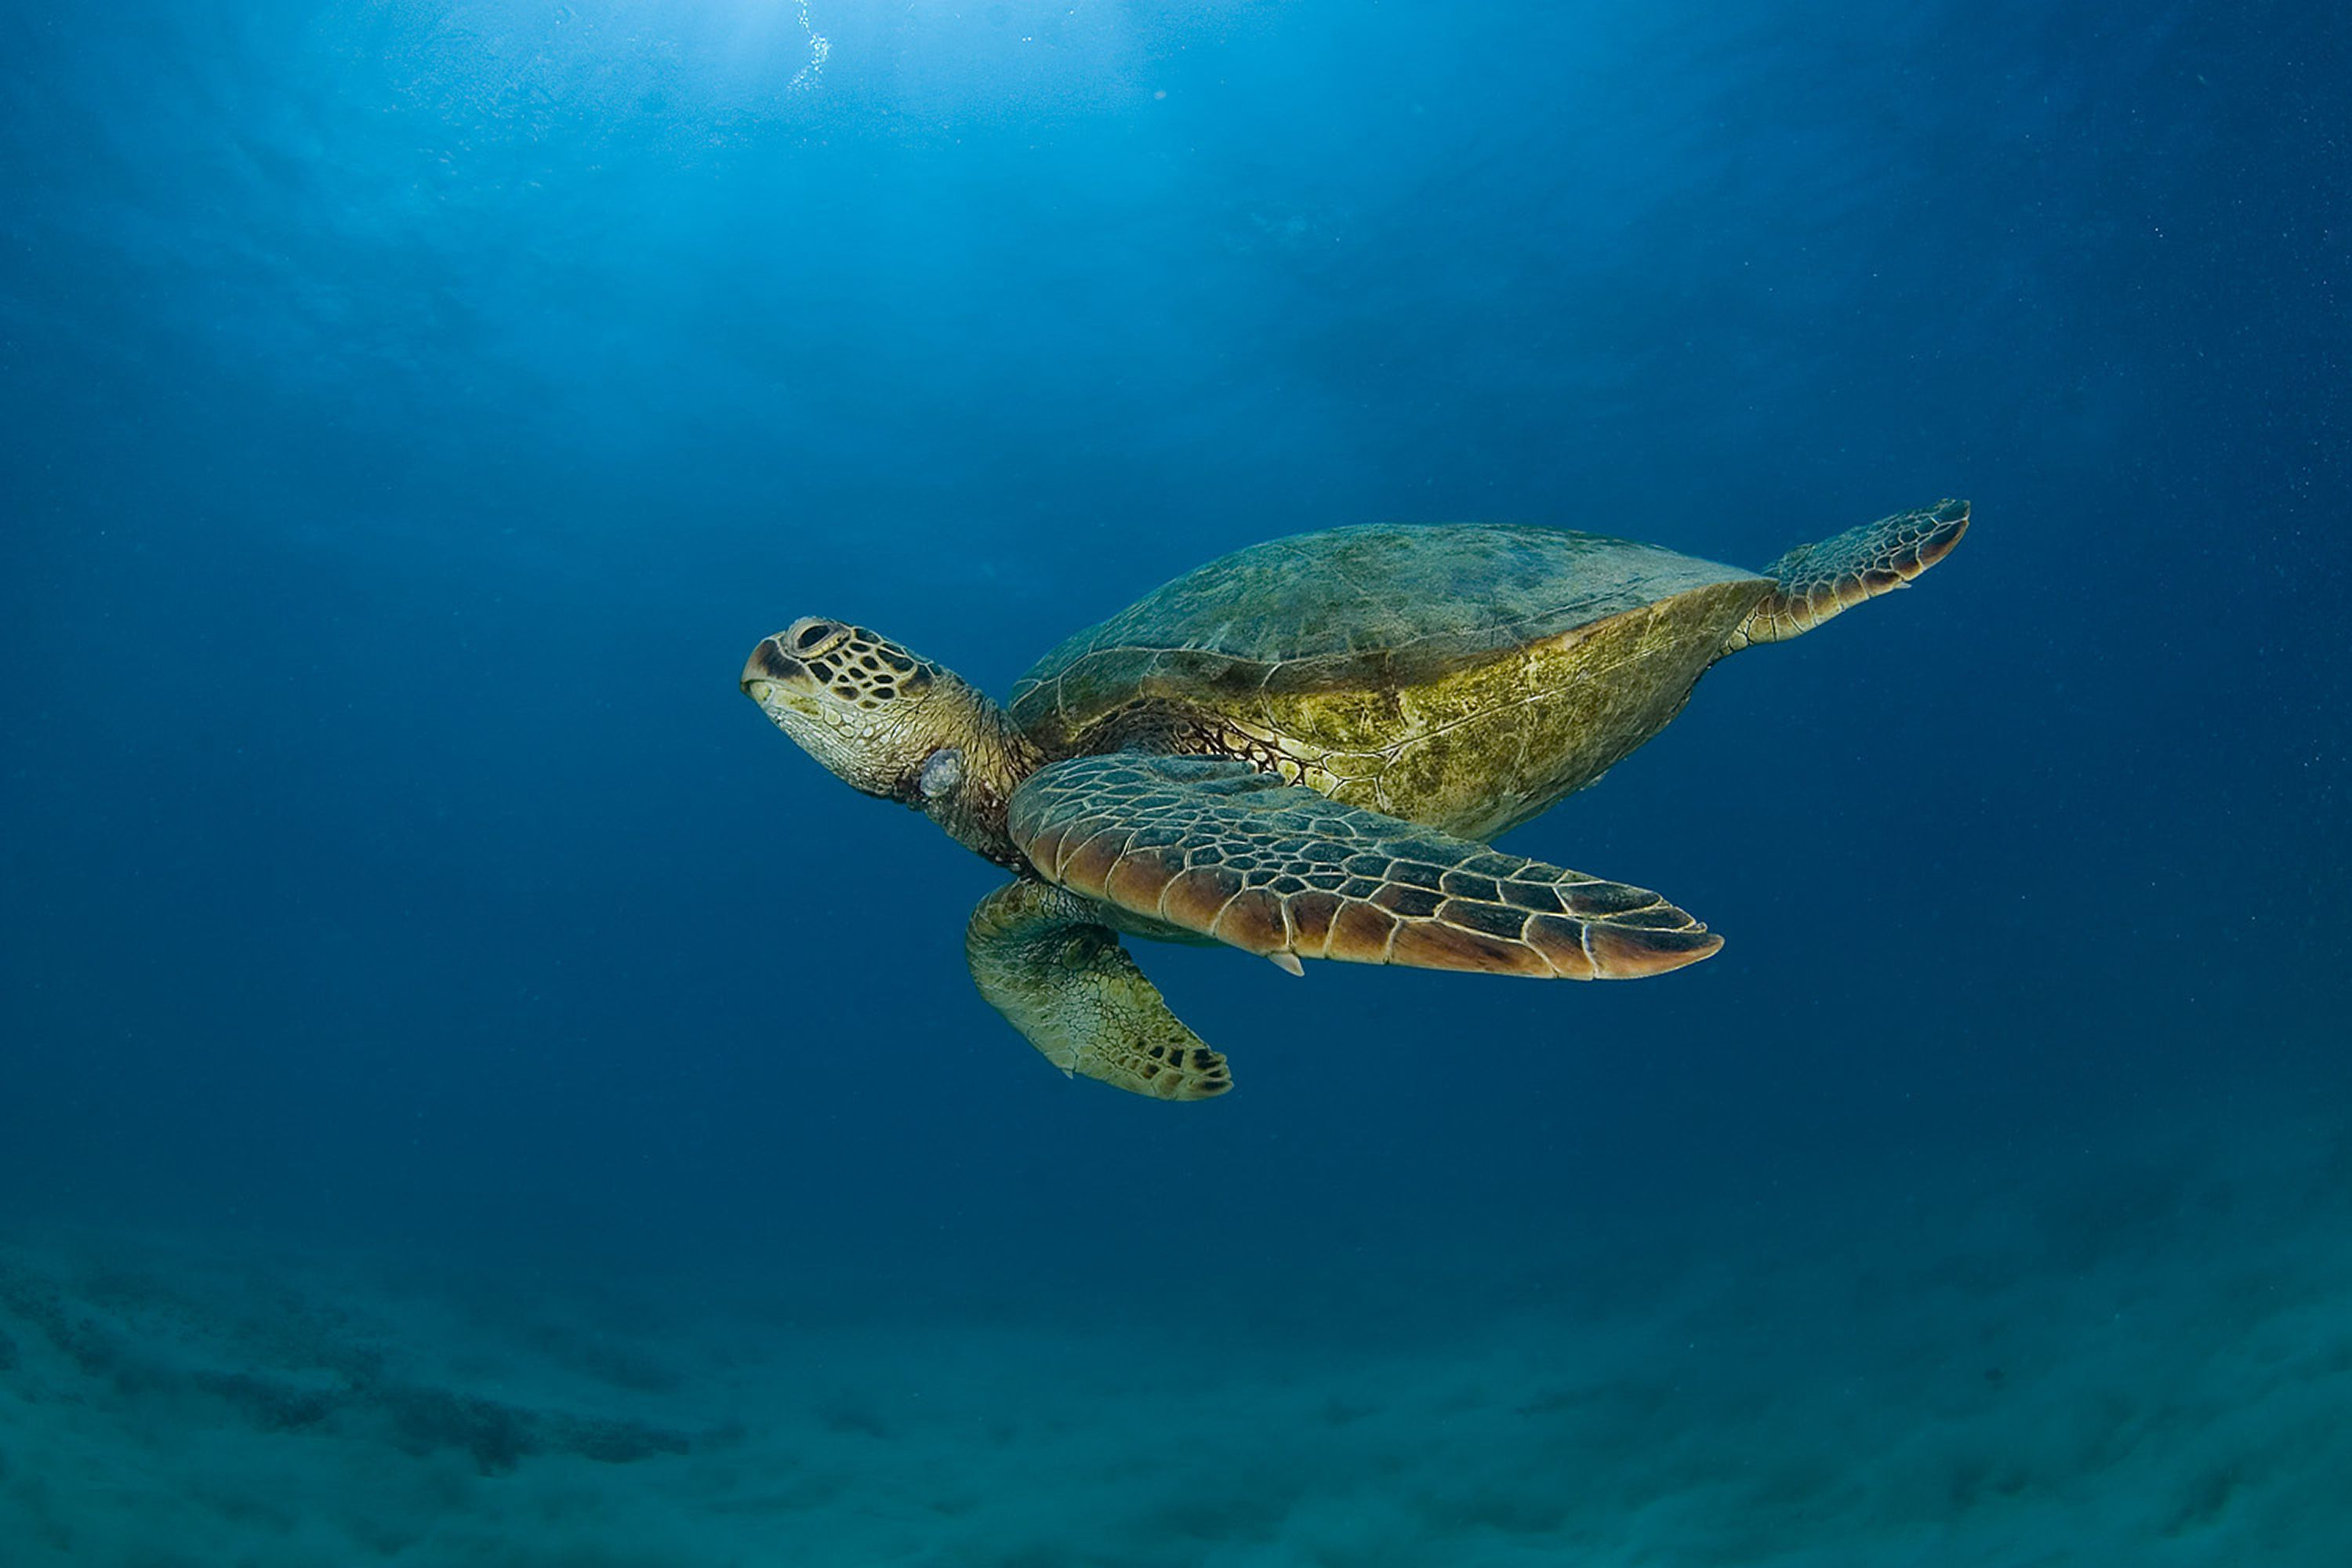 sea turtle Sea turtles sea turtles are among the largest reptiles in the world and inhabit almost every ocean fossil evidence indicates sea turtles shared the earth with dinosaurs over 210 million years ago.